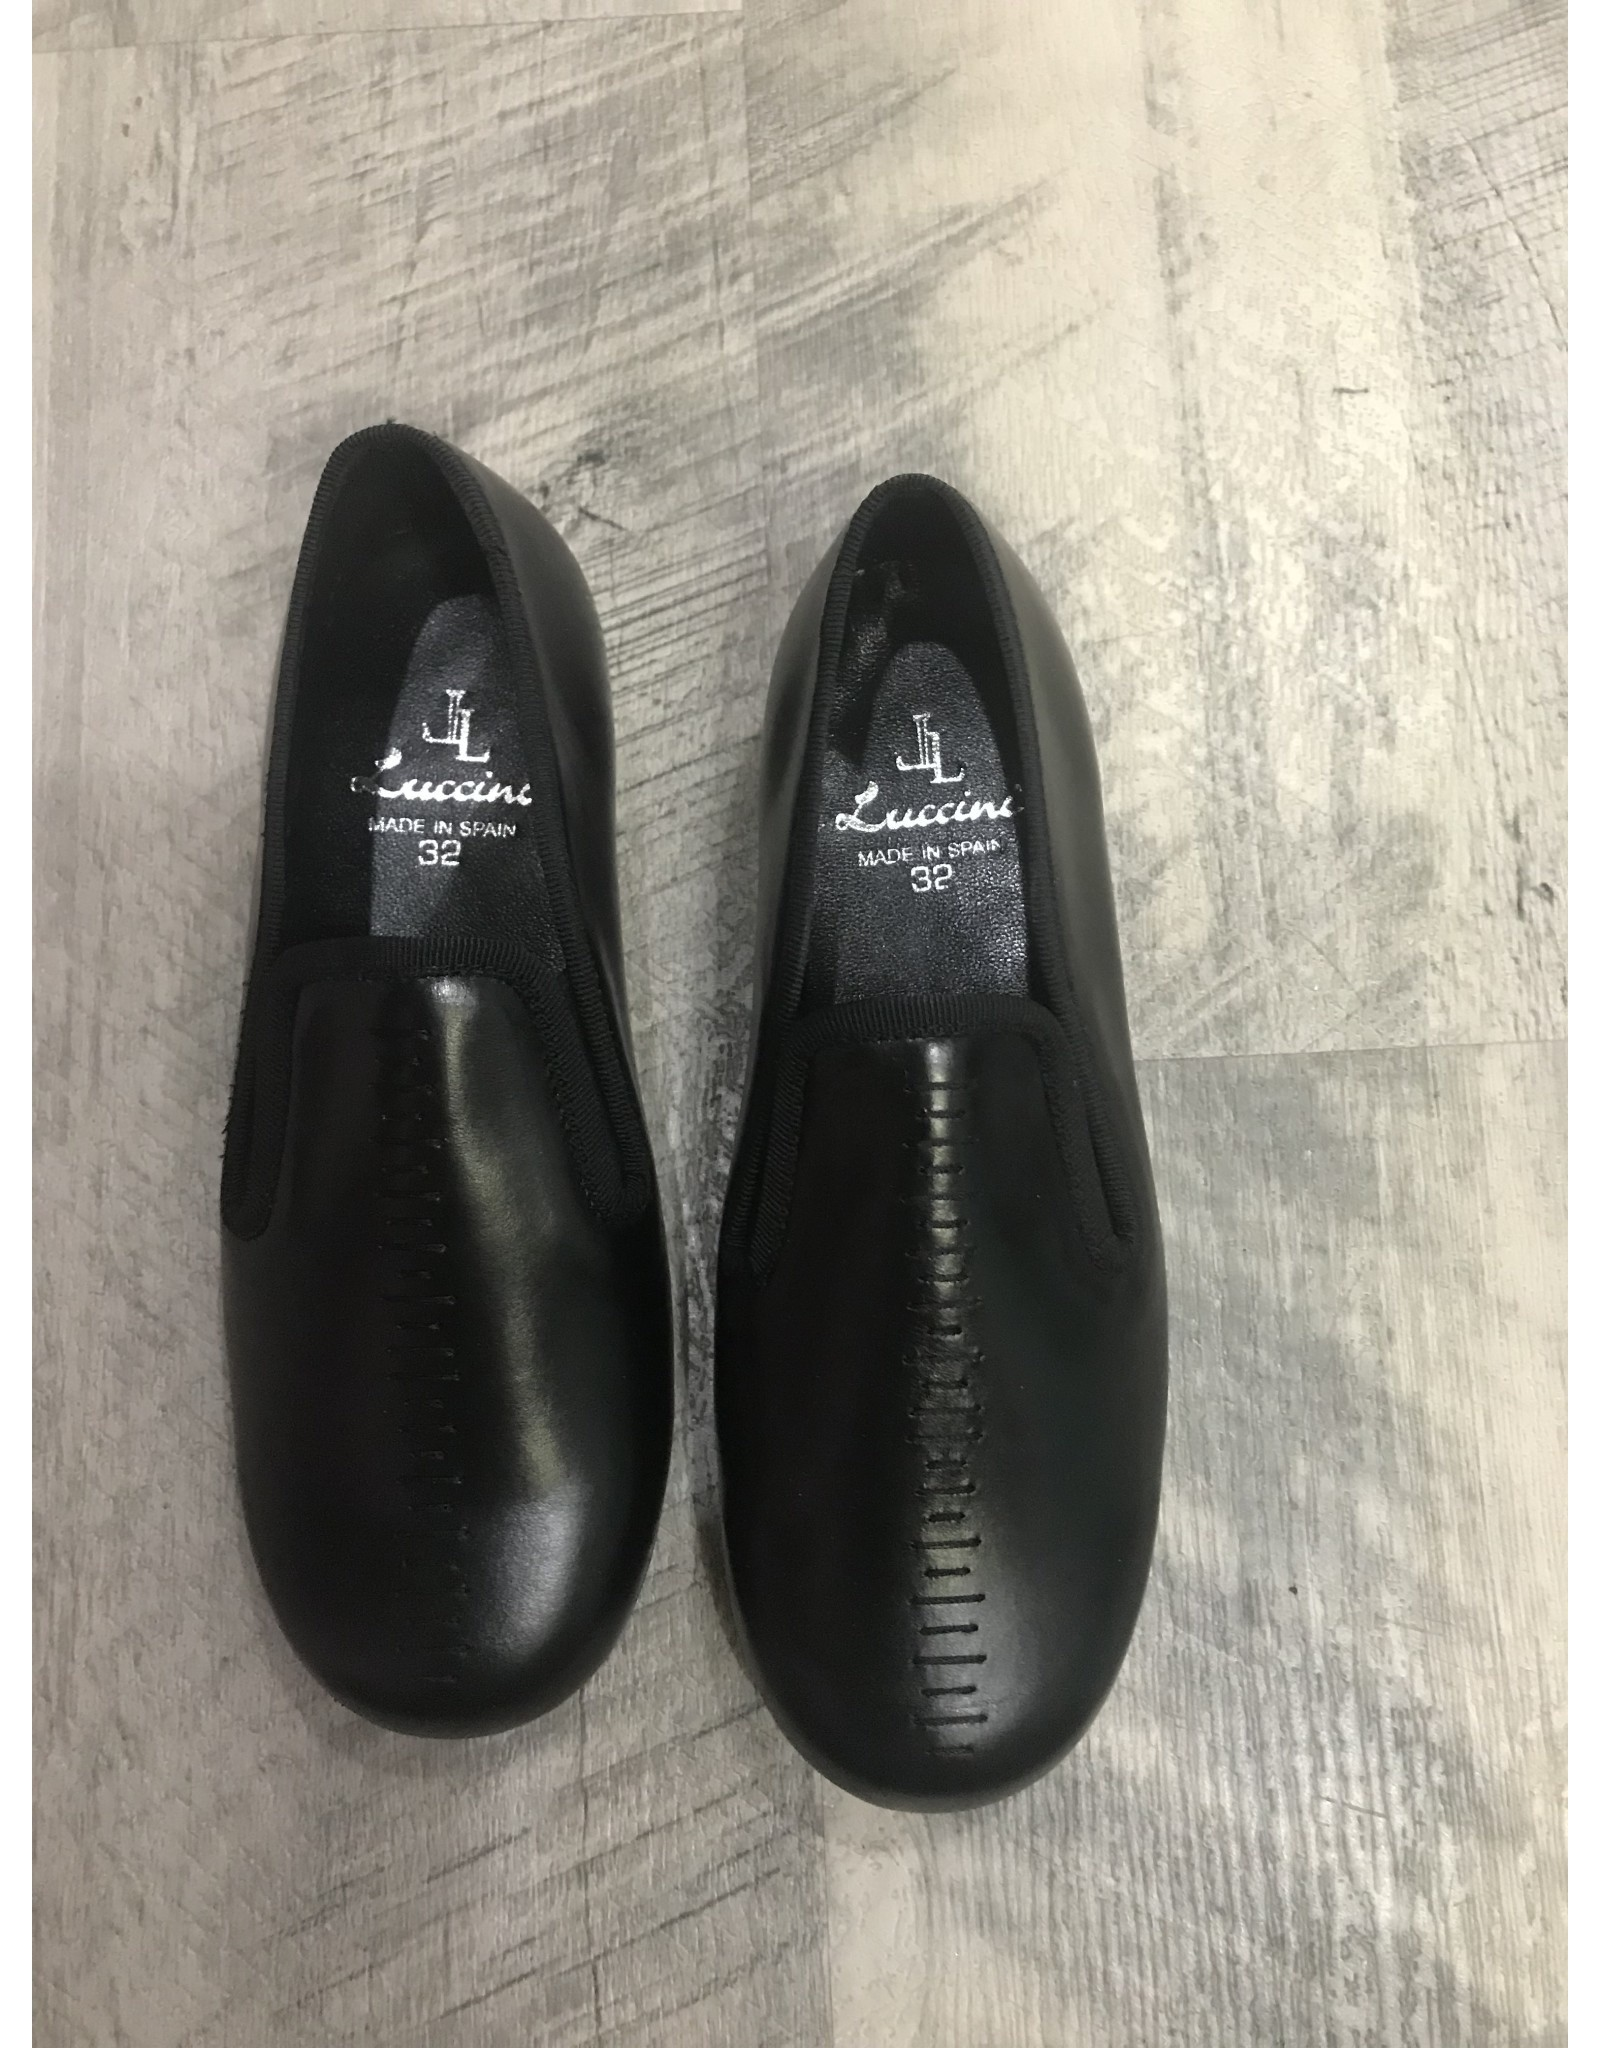 Luccini Luccini Iris Blk Smoking Loafer